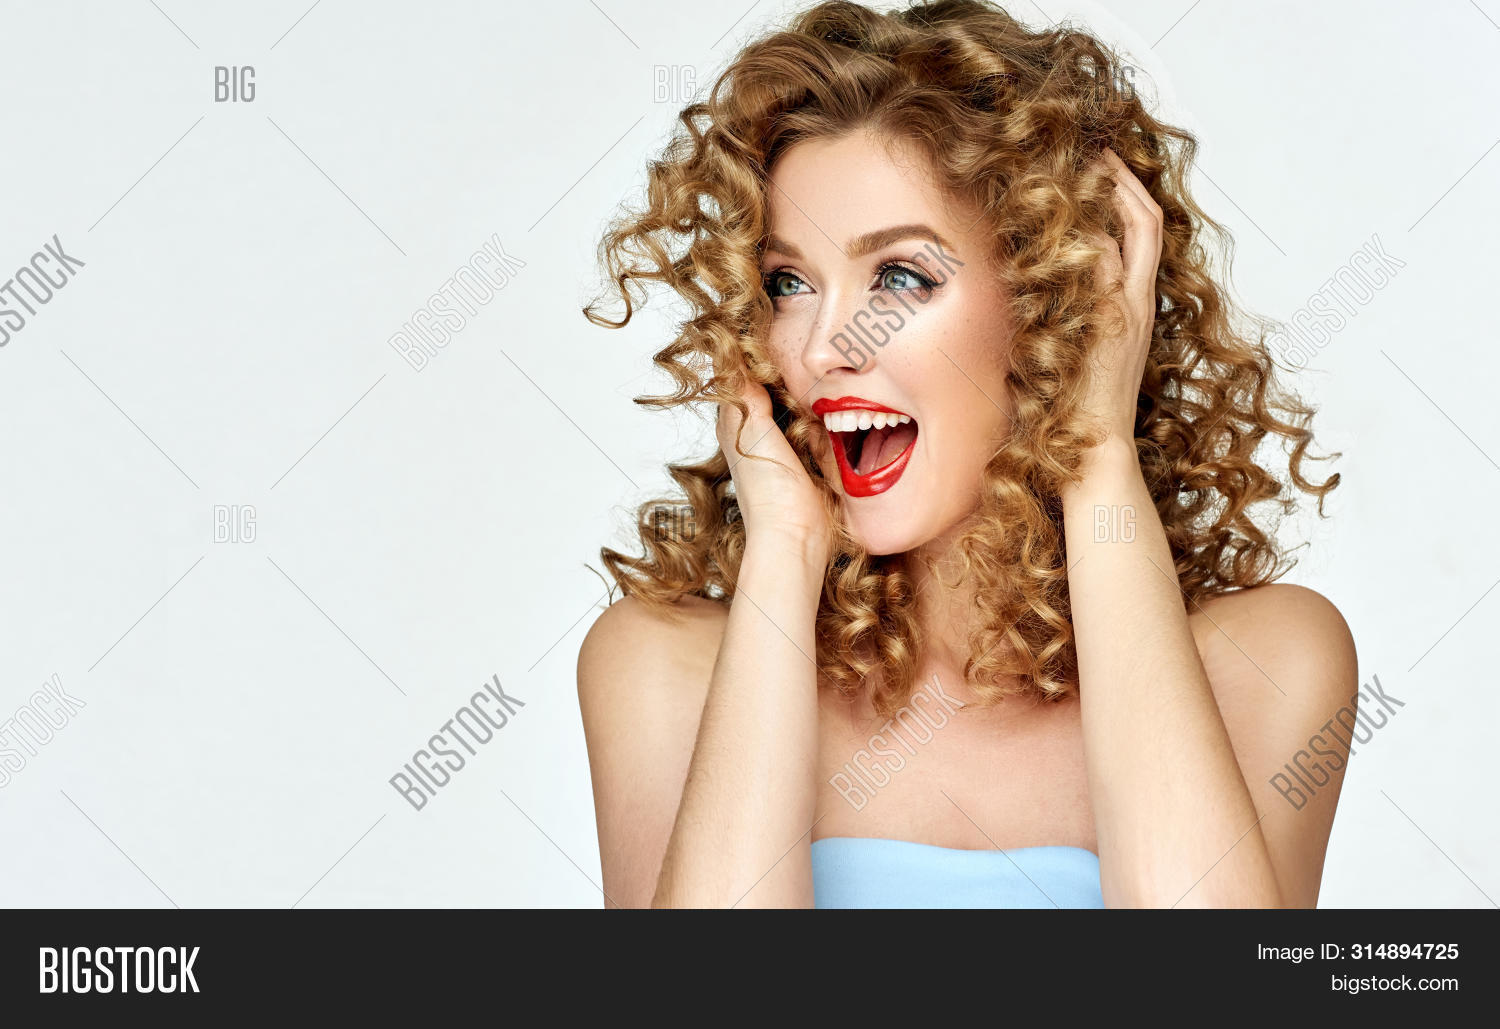 amazed,beautiful,beauty,blonde,care,color,colorful,cosmetics,curly,delight,direction,elegance,emotions,expressions,face,facial,fashion,finger,fun,girl,good,hair,hairdresser,hairstyle,hand,happiness,joy,laughter,look,make,make-up,makeup,model,mood,perfume,pin,pleasure,red,retro,sale,salon,screaming,show,showing,smile,surprise,up,vintage,woman,wonder